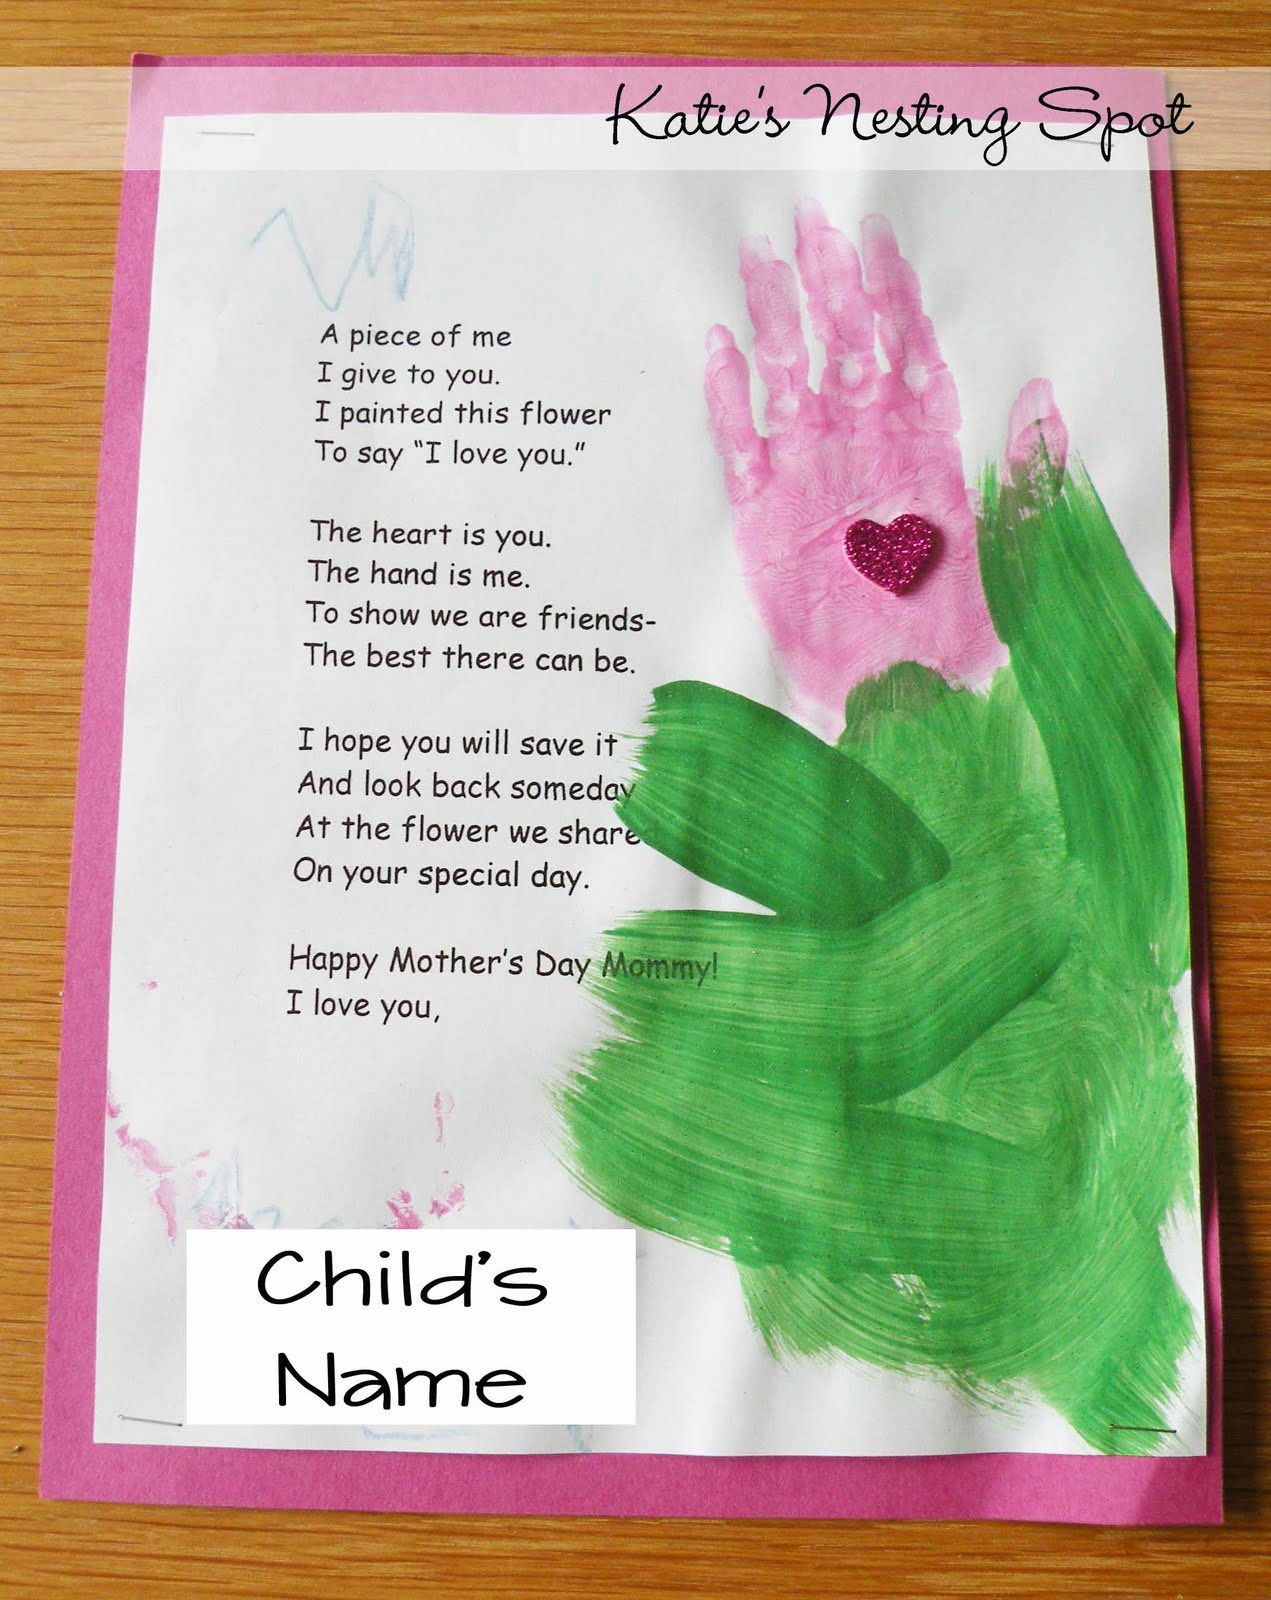 ... , starting with this sweet little handprint flower. The poem reads